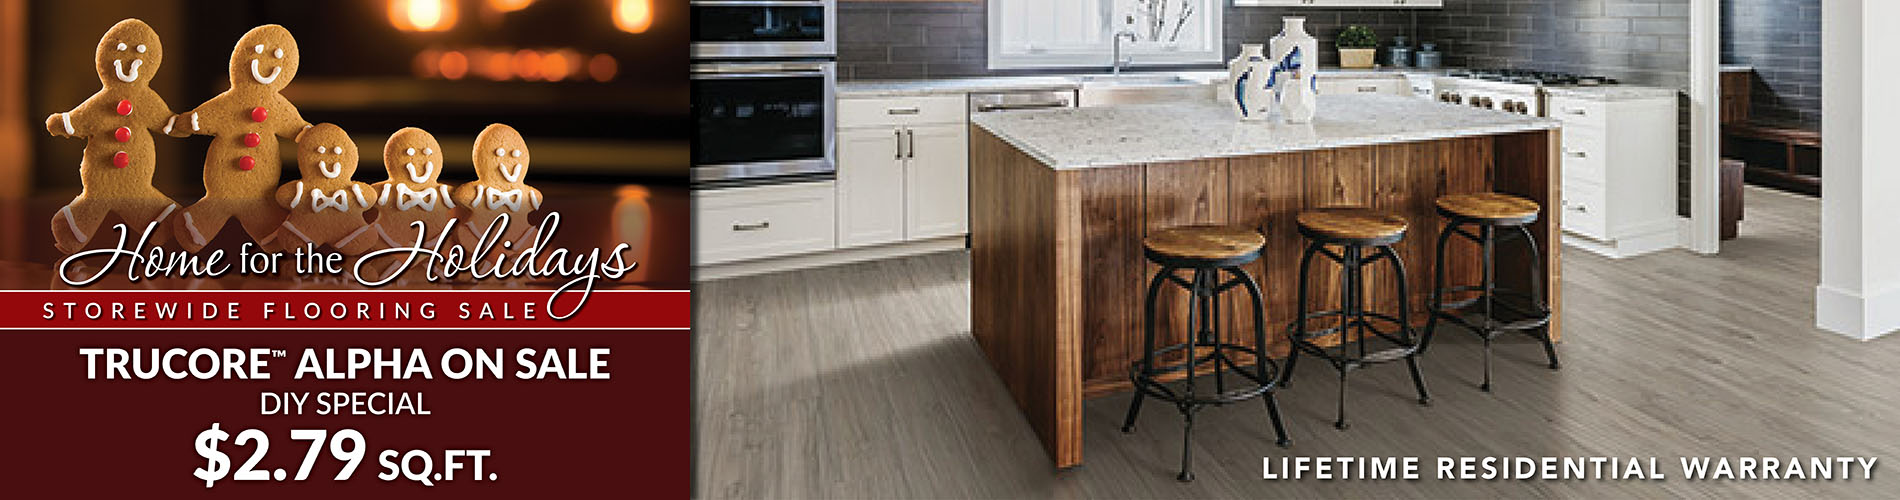 DIY Special on Trucore Alpha Vinyl flooring during our Home for the Holidays storewide flooring sale. $2.79 sq ft.